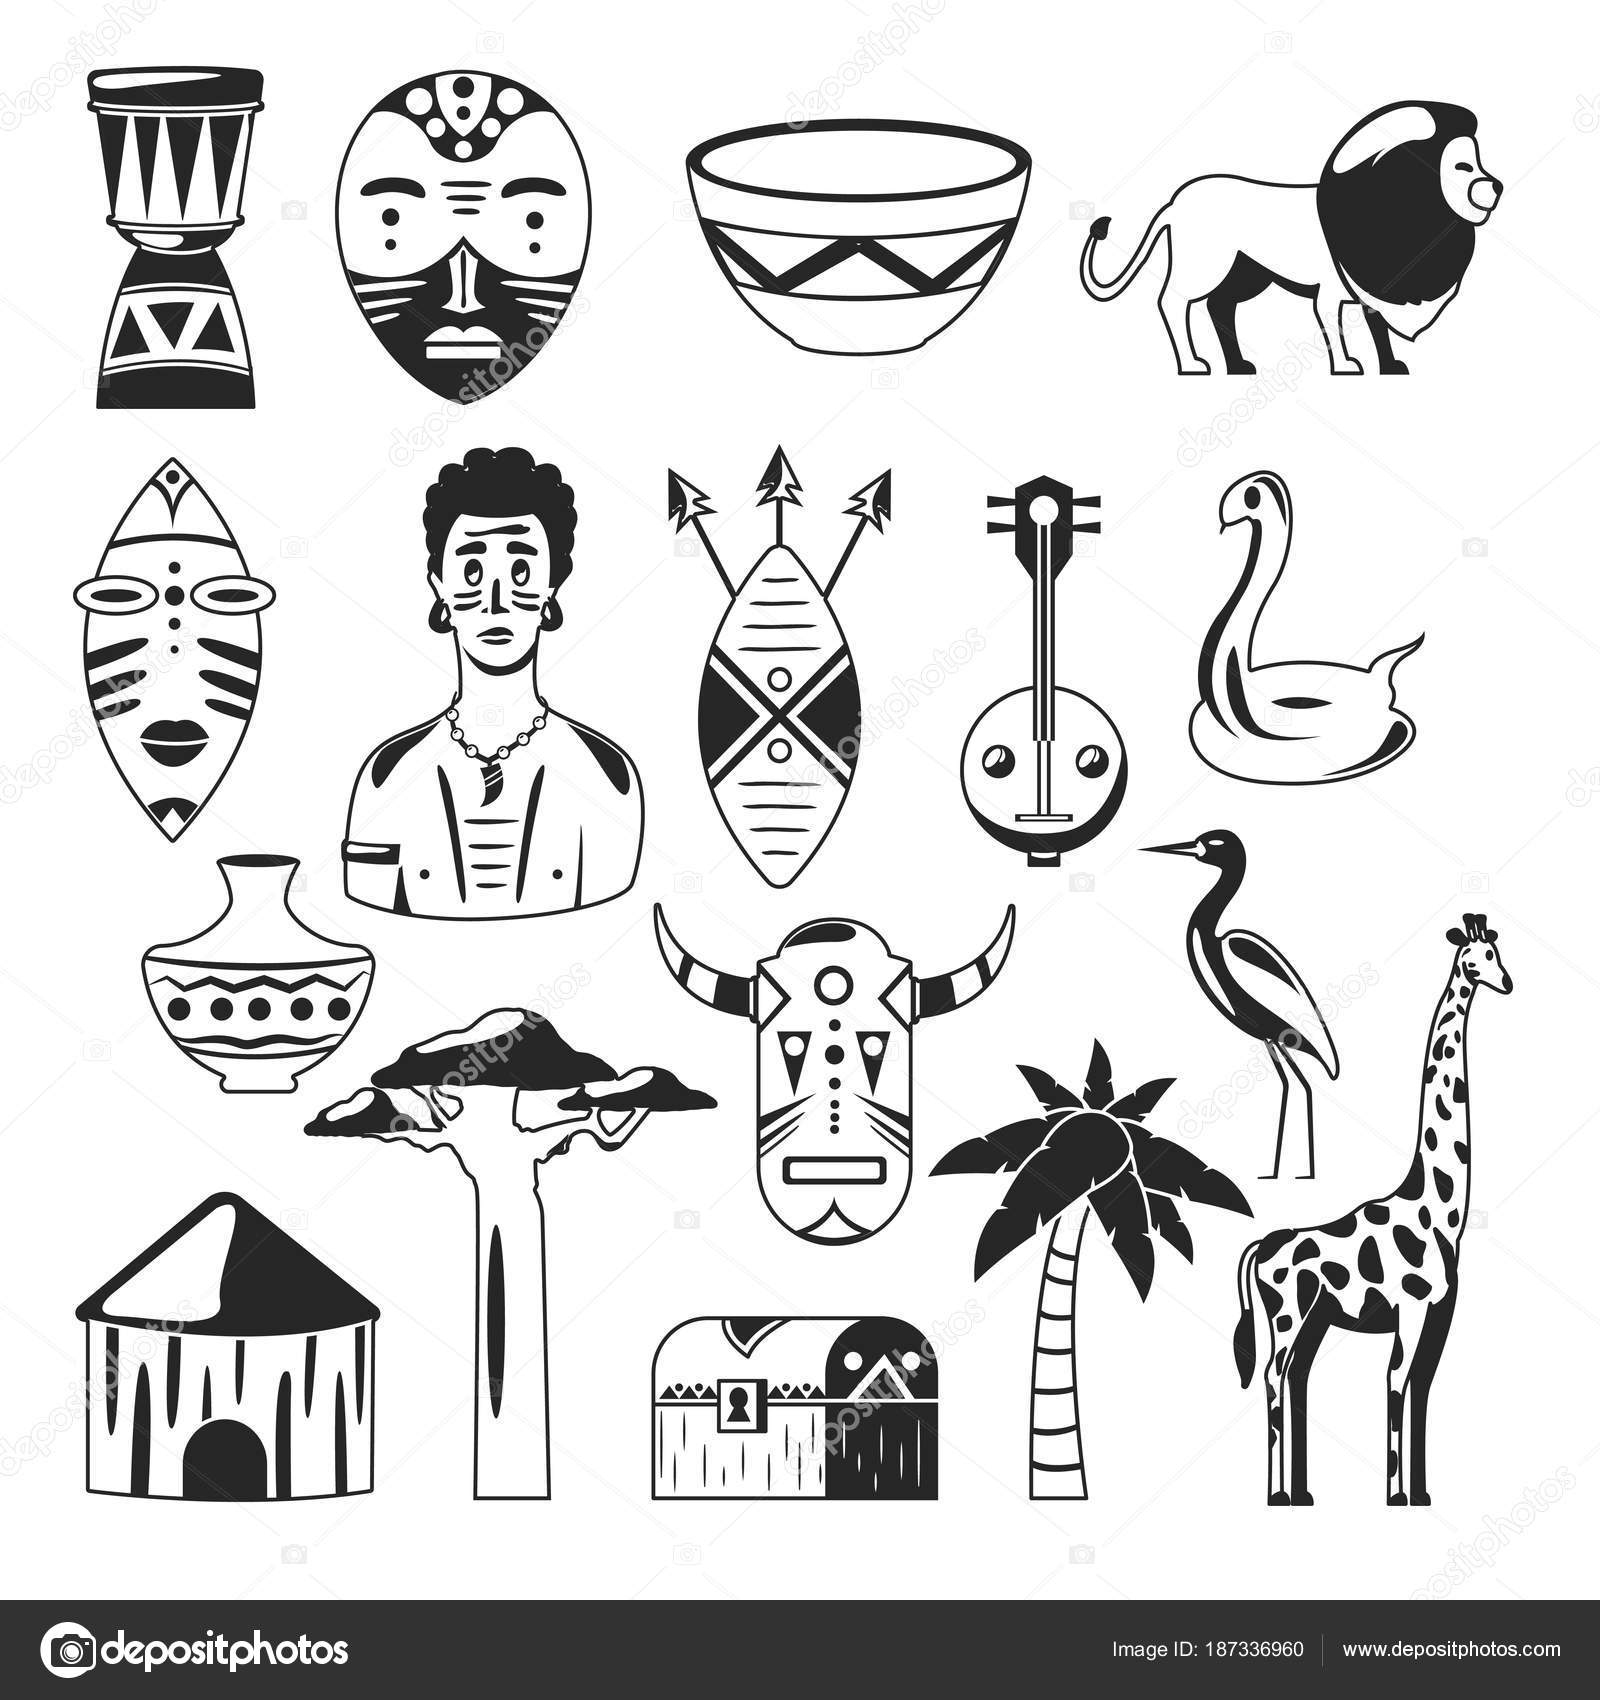 Africa  African images  Vector icons  Giraffe, mask, man